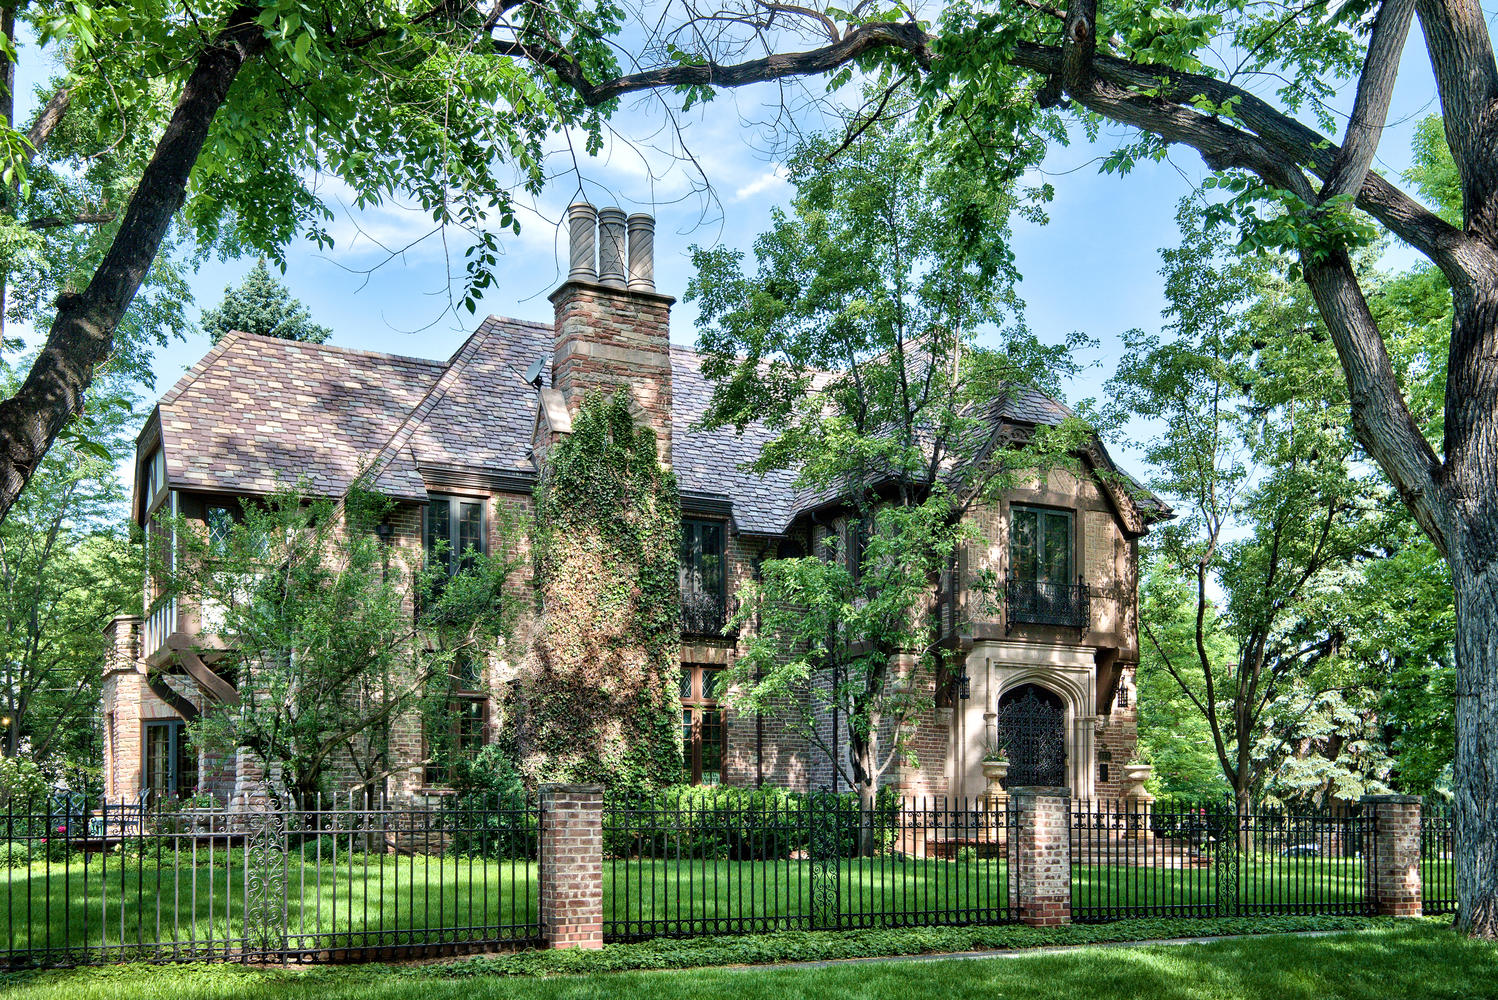 Single Family Home for Active at Spectacular Tudor on a Beautiful Half Acre in Historic Denver Country Club 177 Humboldt Street Denver, Colorado 80218 United States